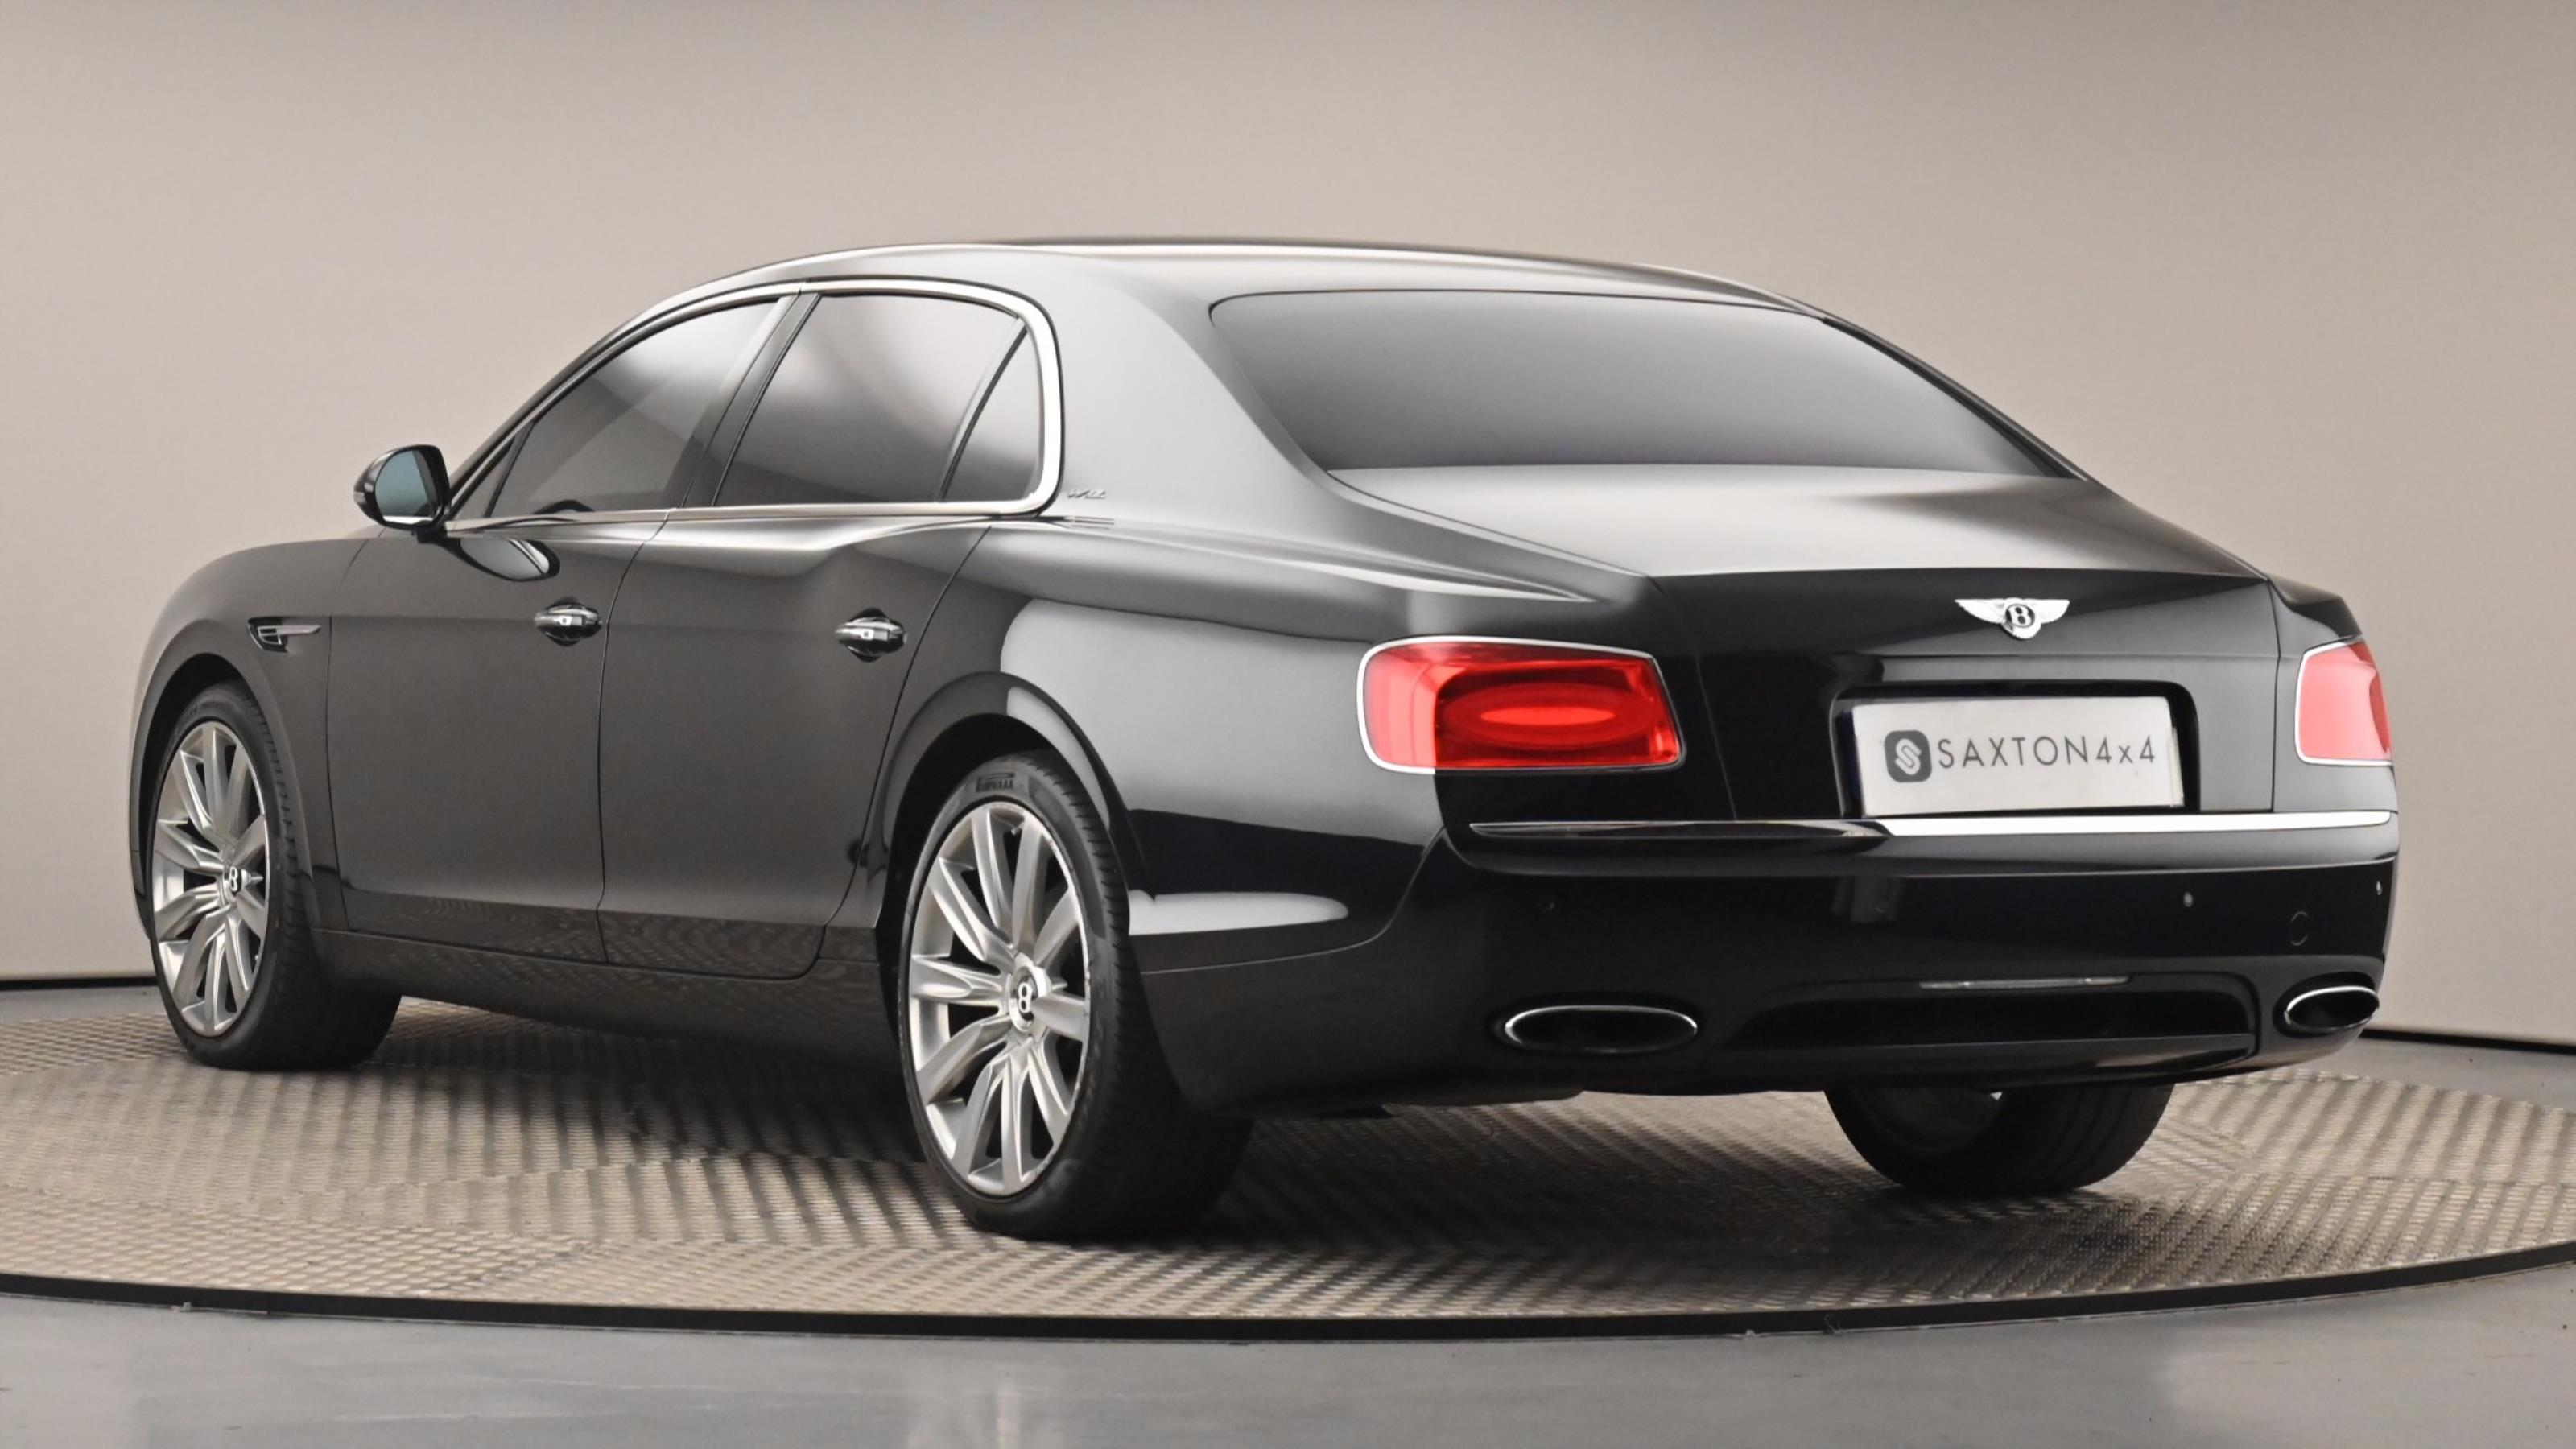 Used 2015 Bentley FLYING SPUR 6.0 W12 4dr Auto Black at Saxton4x4